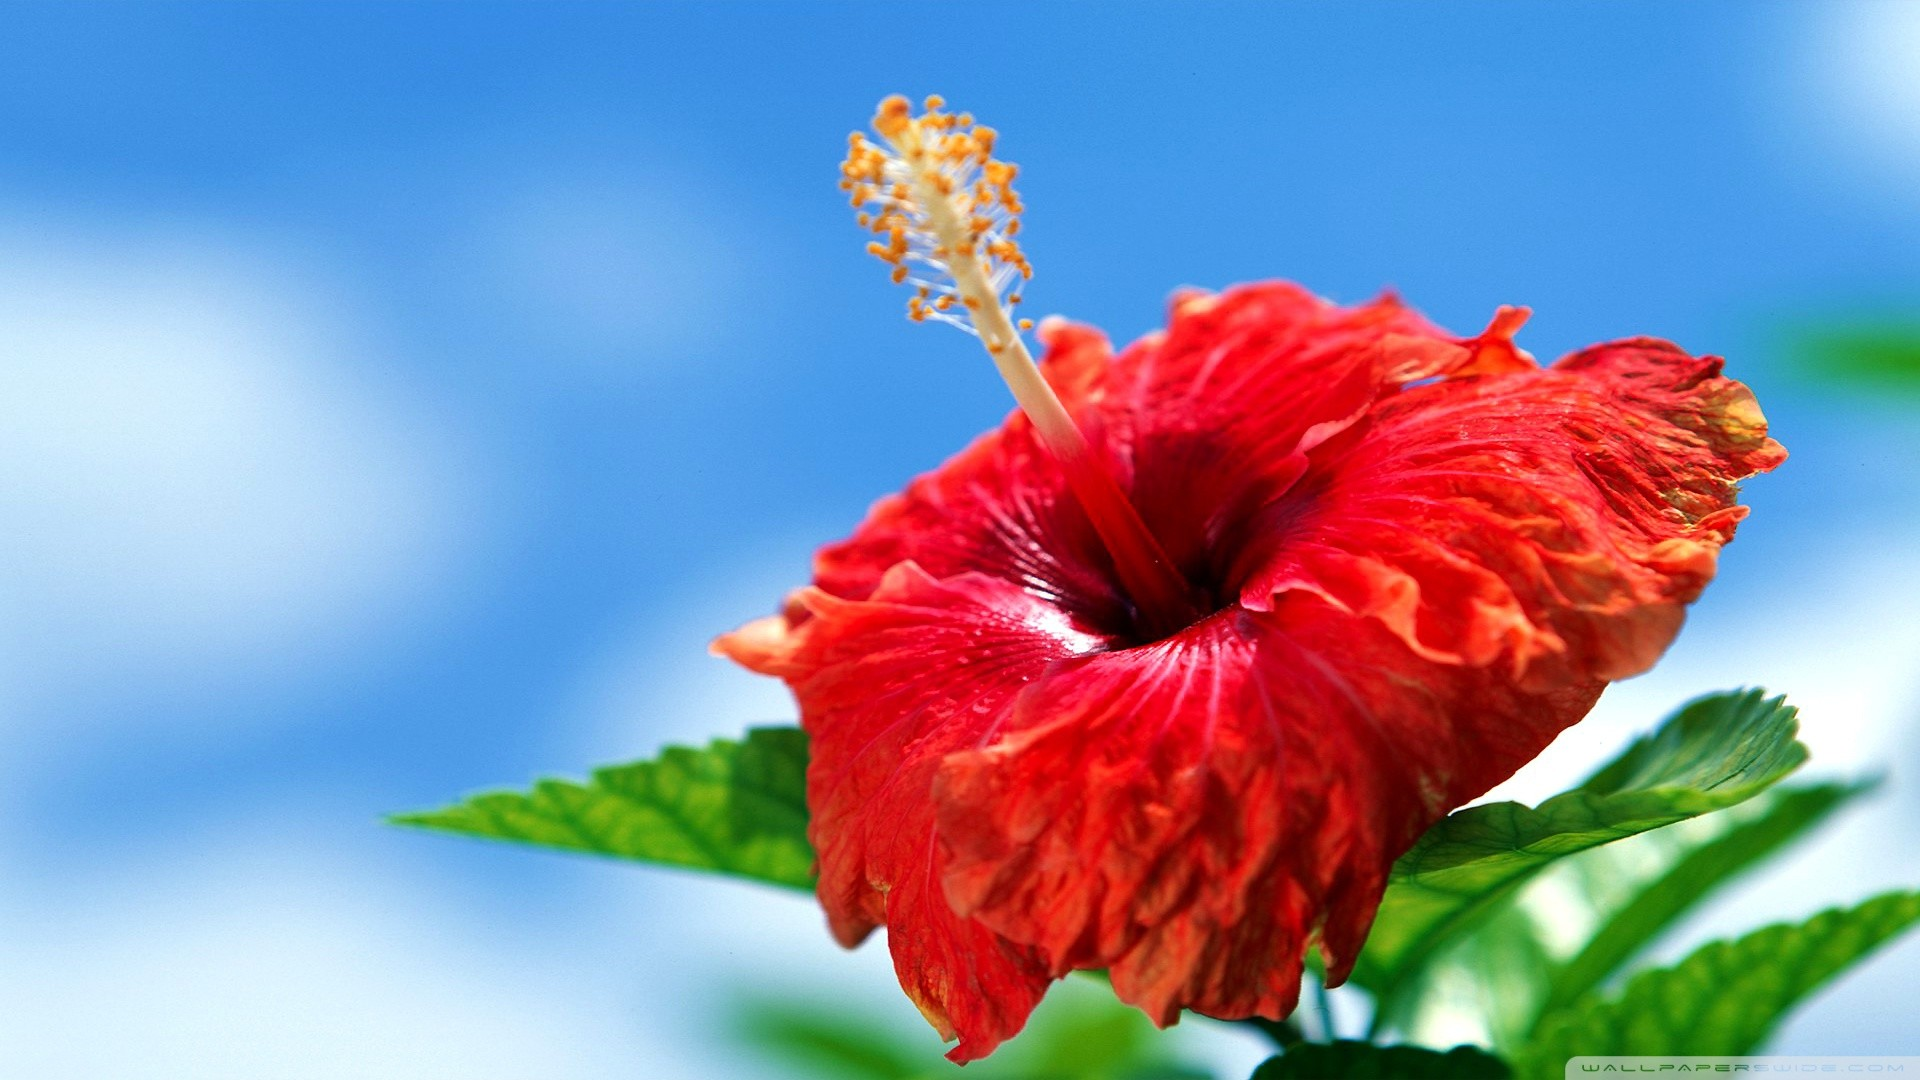 Res: 1920x1080, Hibiscus Wallpapers 8 - 1920 X 1080